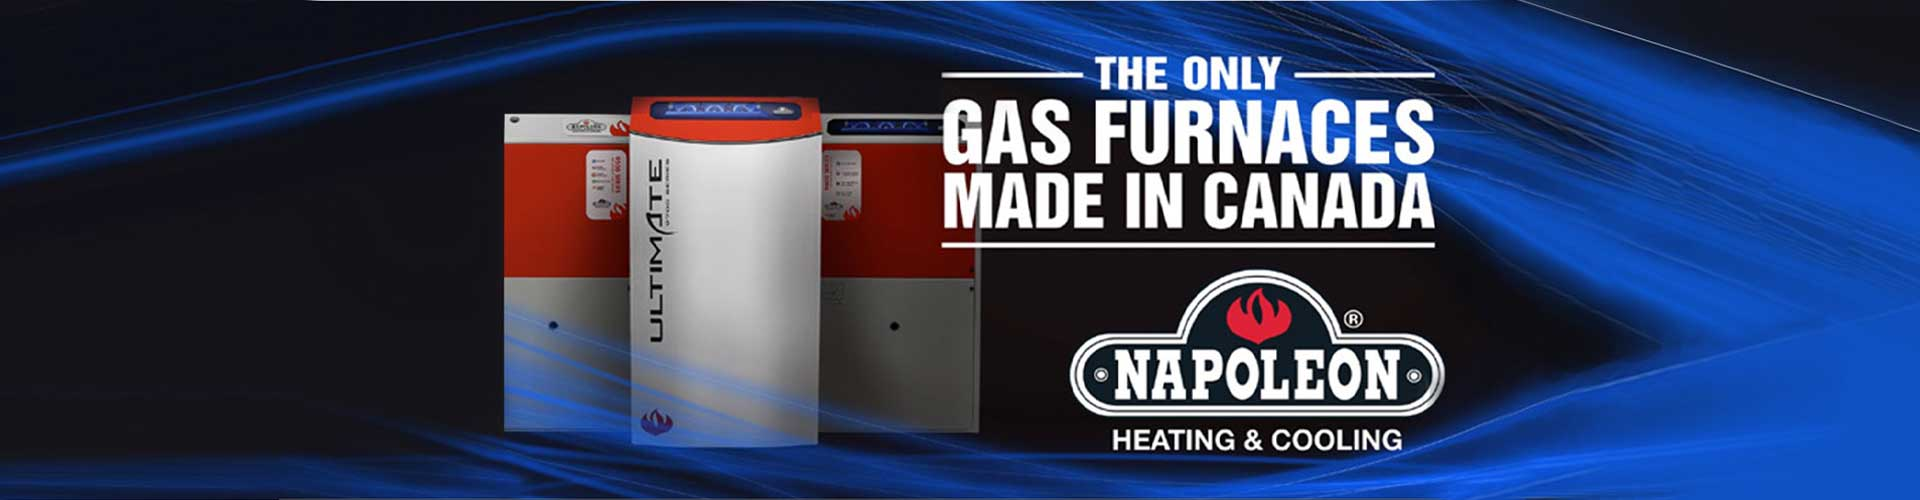 Napoleon Gas Furnaces, Made in Canada - Harris Heating and Cooling, Windsor